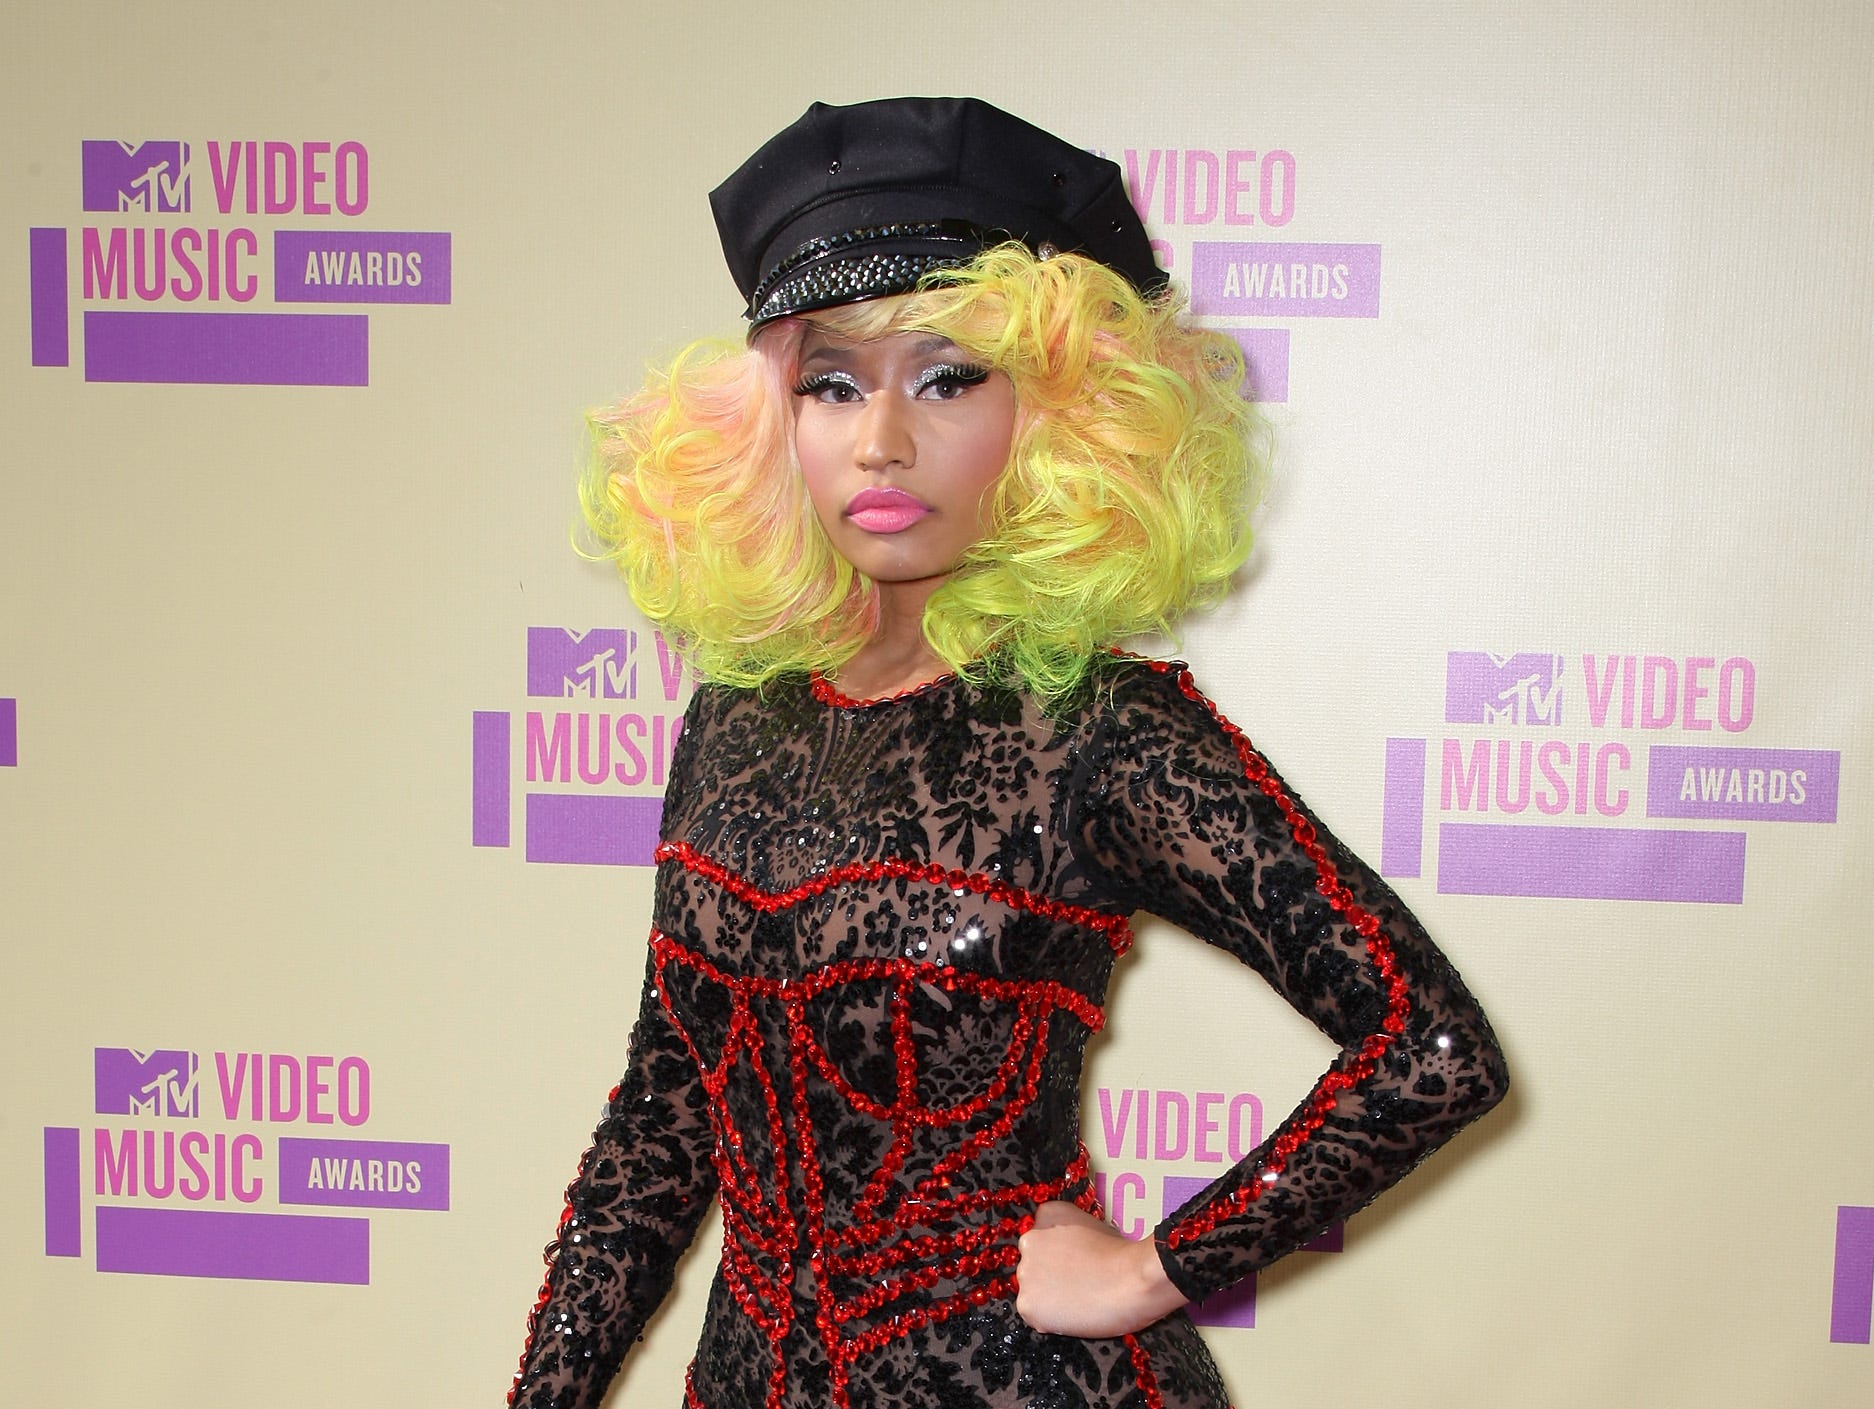 LOS ANGELES, CA - SEPTEMBER 06:  Rapper/singer Nicki Minaj arrives at the 2012 MTV Video Music Awards at Staples Center on September 6, 2012 in Los Angeles, California.  (Photo by Frederick M. Brown/Getty Images) ORG XMIT: 149866652 ORIG FILE ID: 151405375